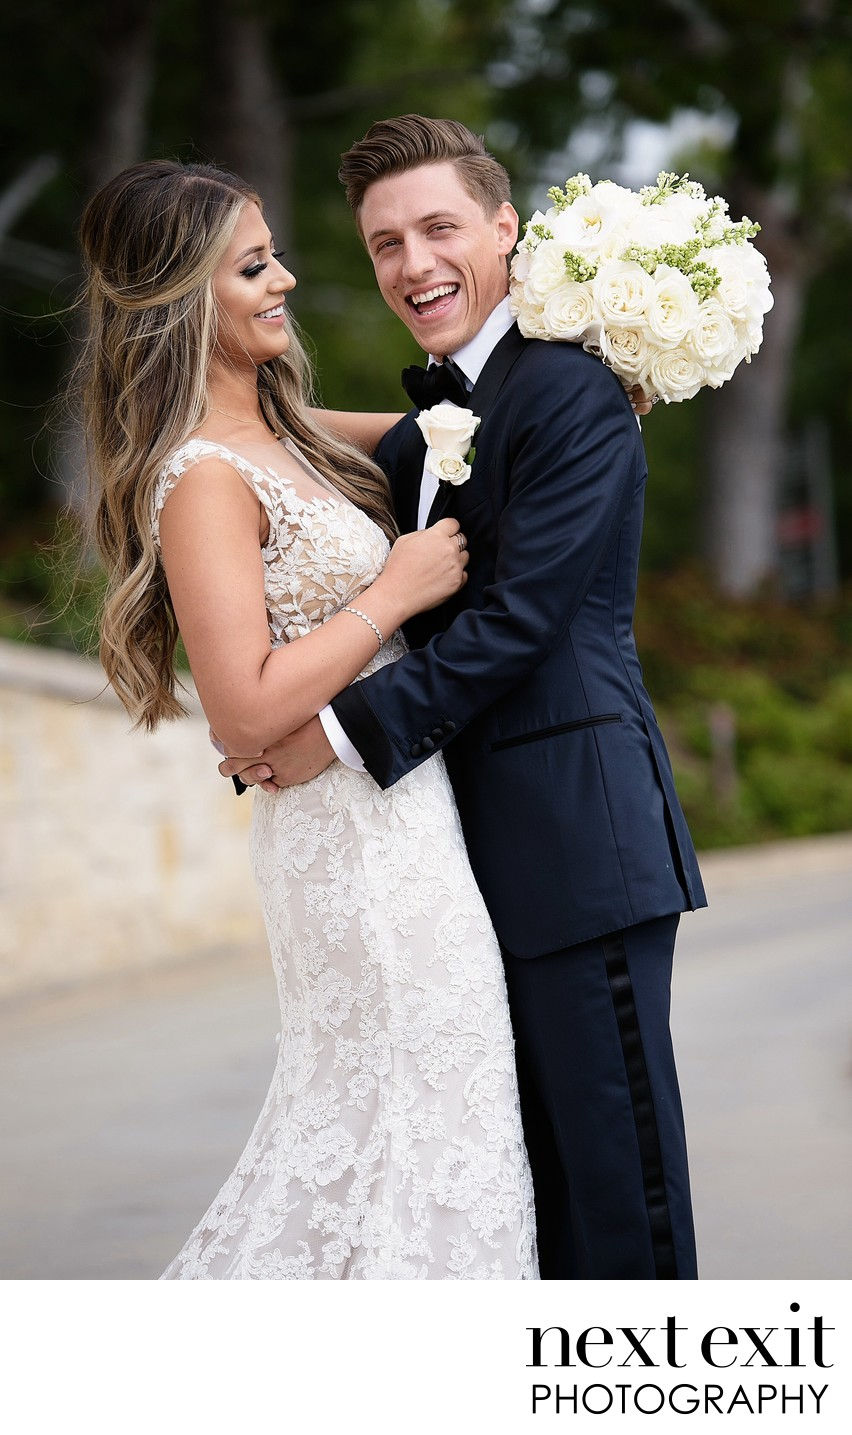 Bride and Groom at The Resort At Pelican Hill - Los Angeles Wedding, Mitzvah & Portrait Photographer - Next Exit Photography